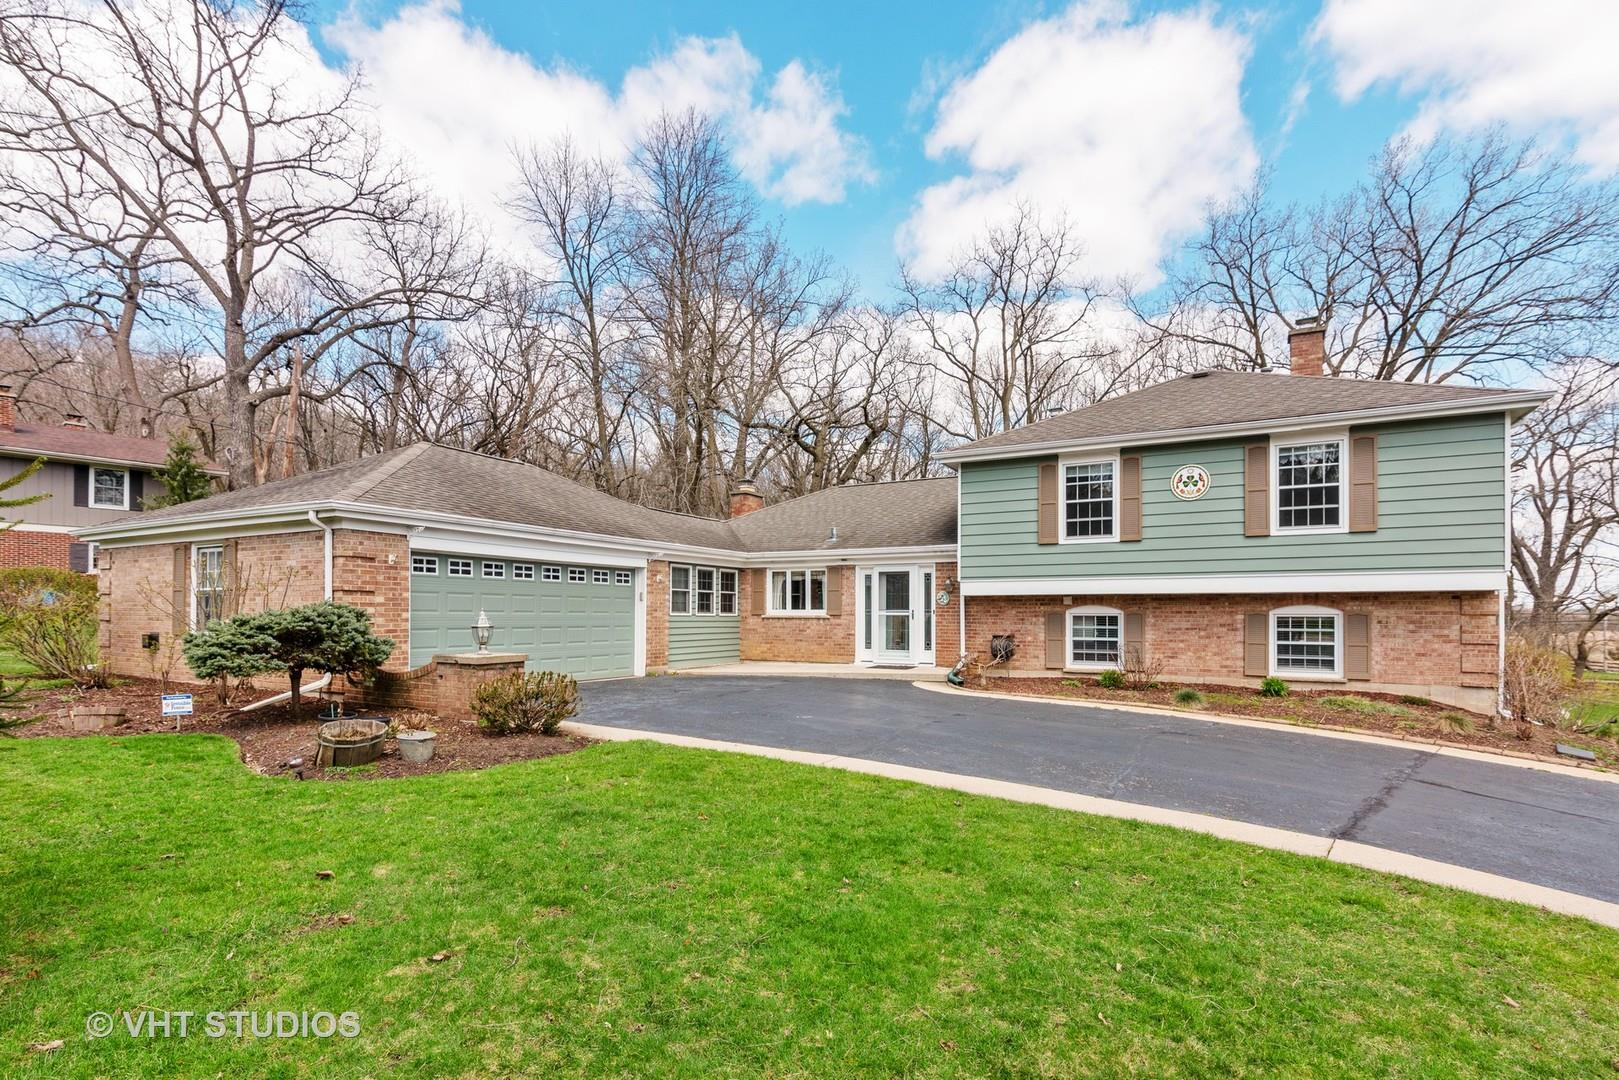 36W272 HICKORY HOLLOW Drive, Dundee, IL 60118 - #: 10689166